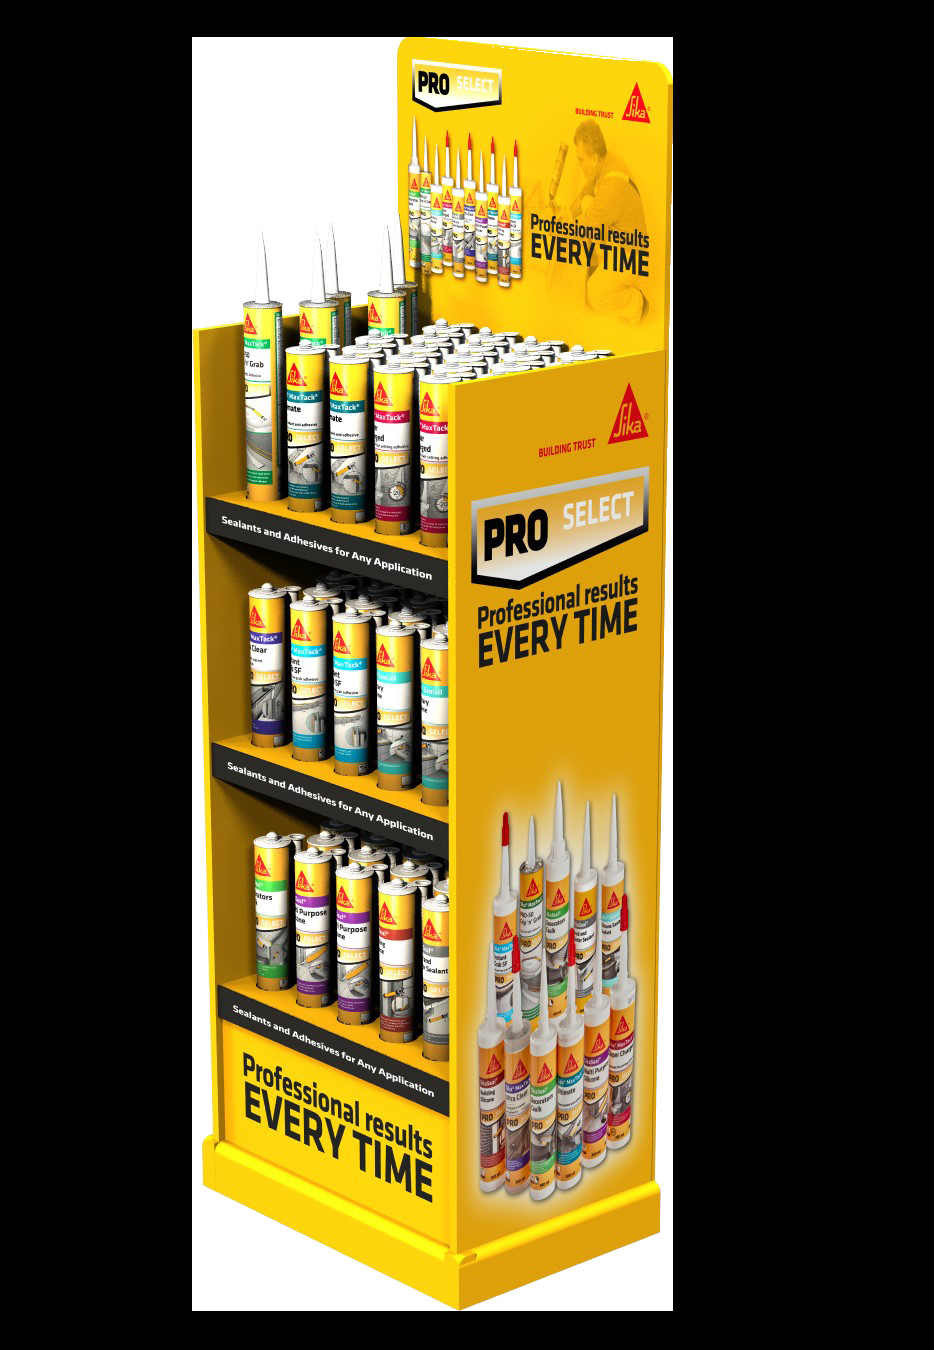 sika hardwood floor glue of sikaa pro select free standing display unit everbuild for sika pro select free standing display unit